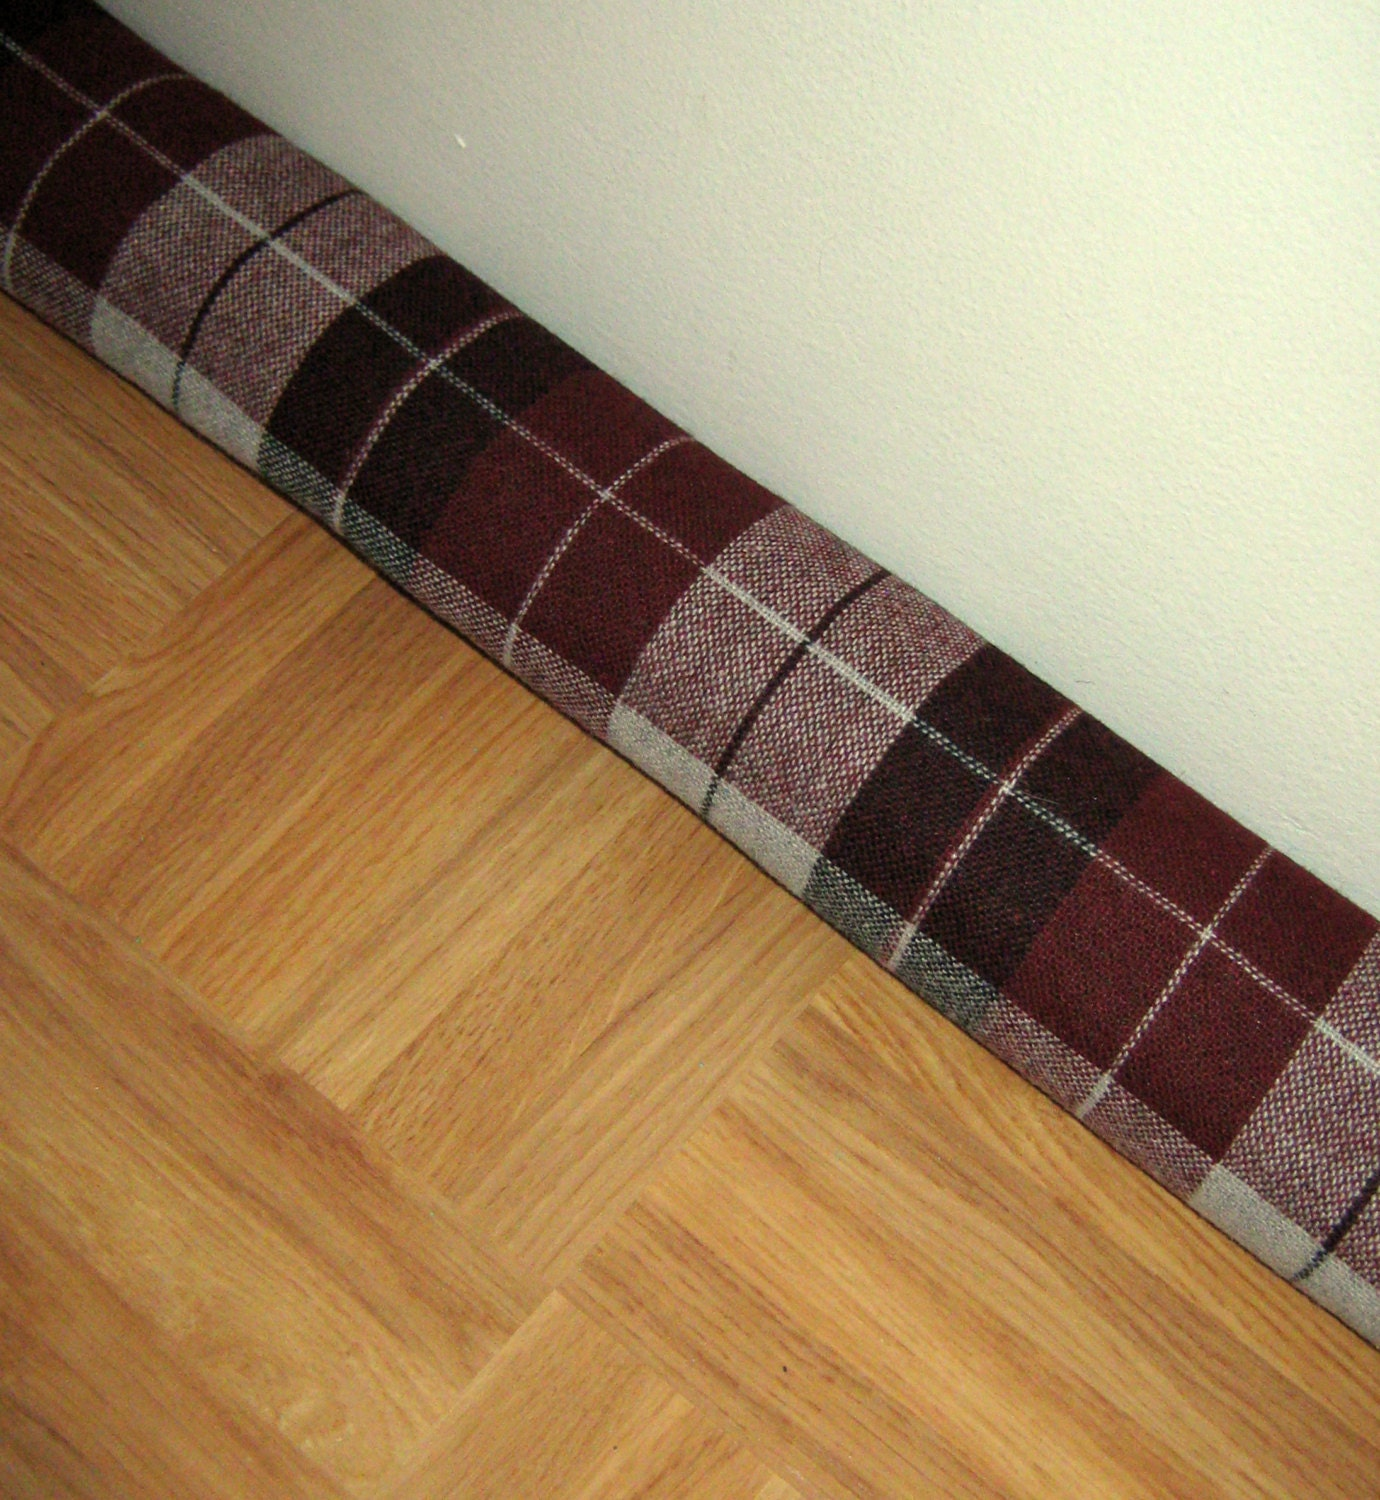 Door draft stopper draft excluder draft snake burgundy black for Door draft stopper